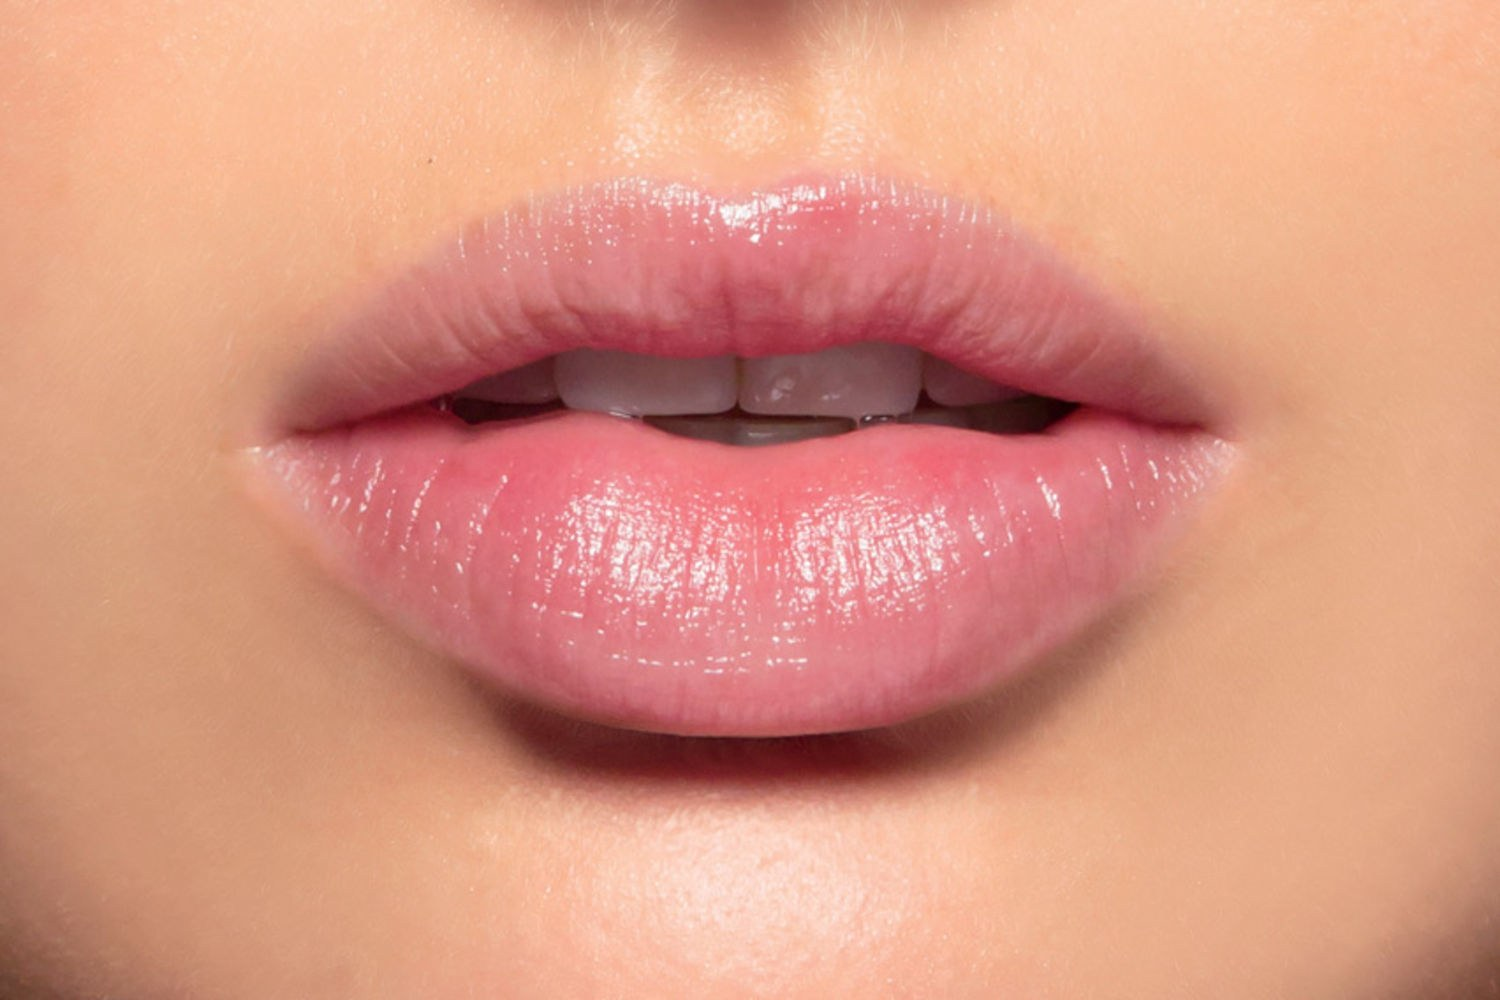 Cute Red Color Wallpaper Chapped Lips Listen To Beauty Expert To Get Smooth Lips